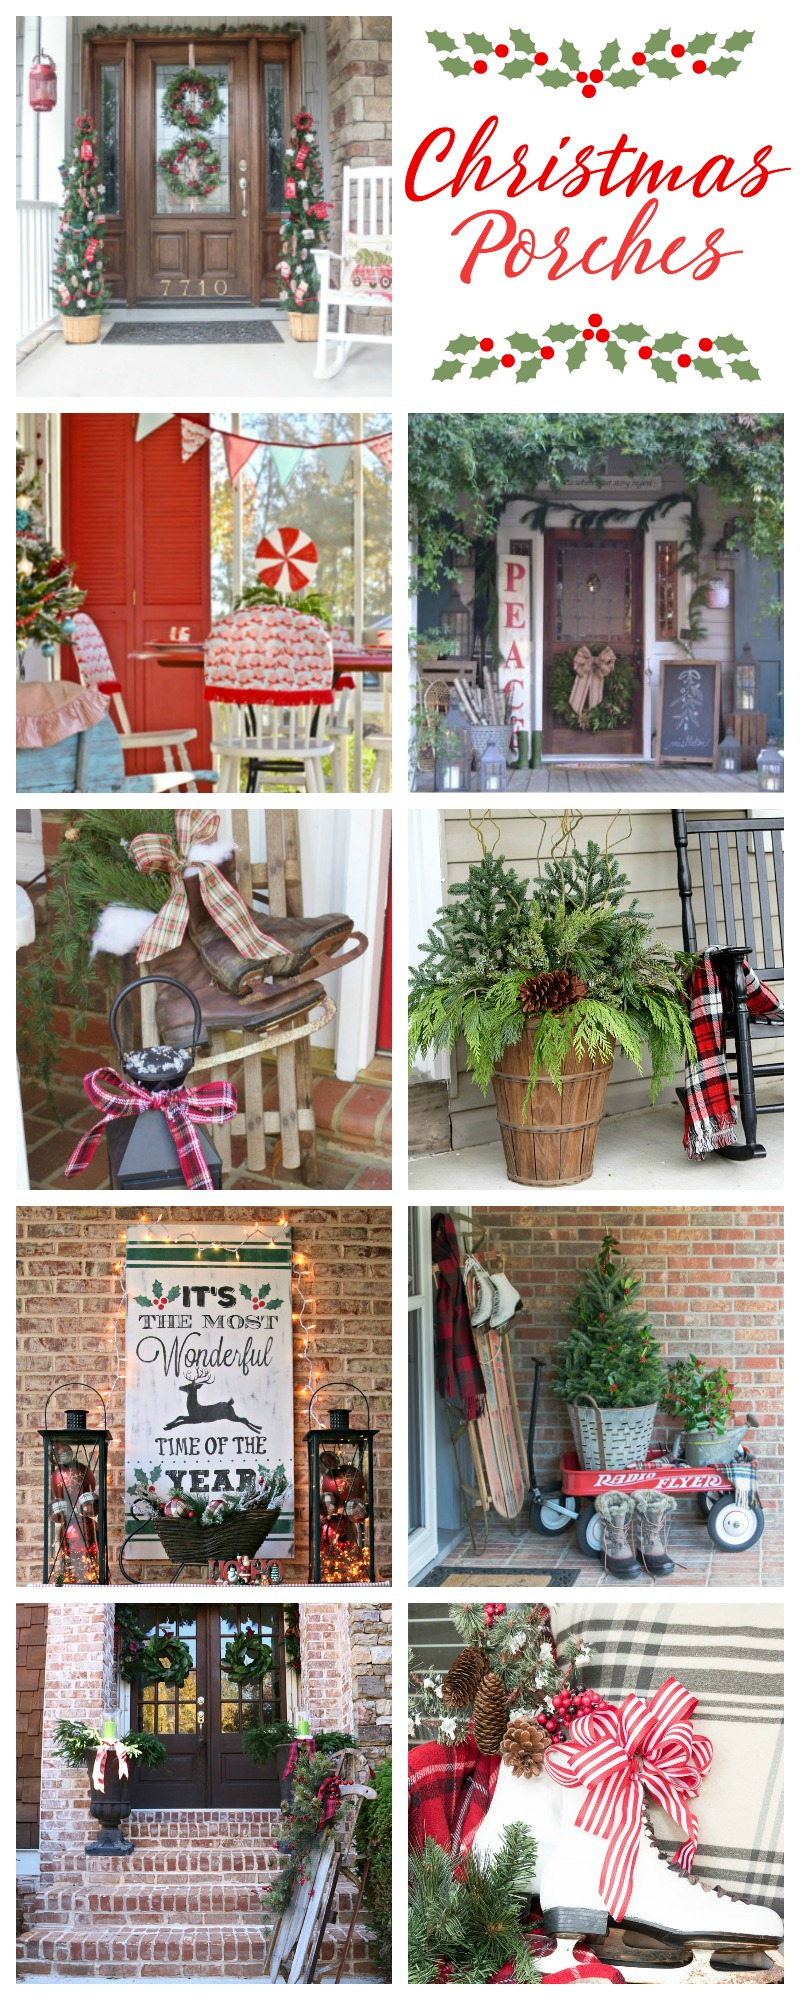 Join 8 bloggers as we showcase our Christmas porches. From farmhouse to French country to vintage to lodge style, you're sure to find something to inspire you.